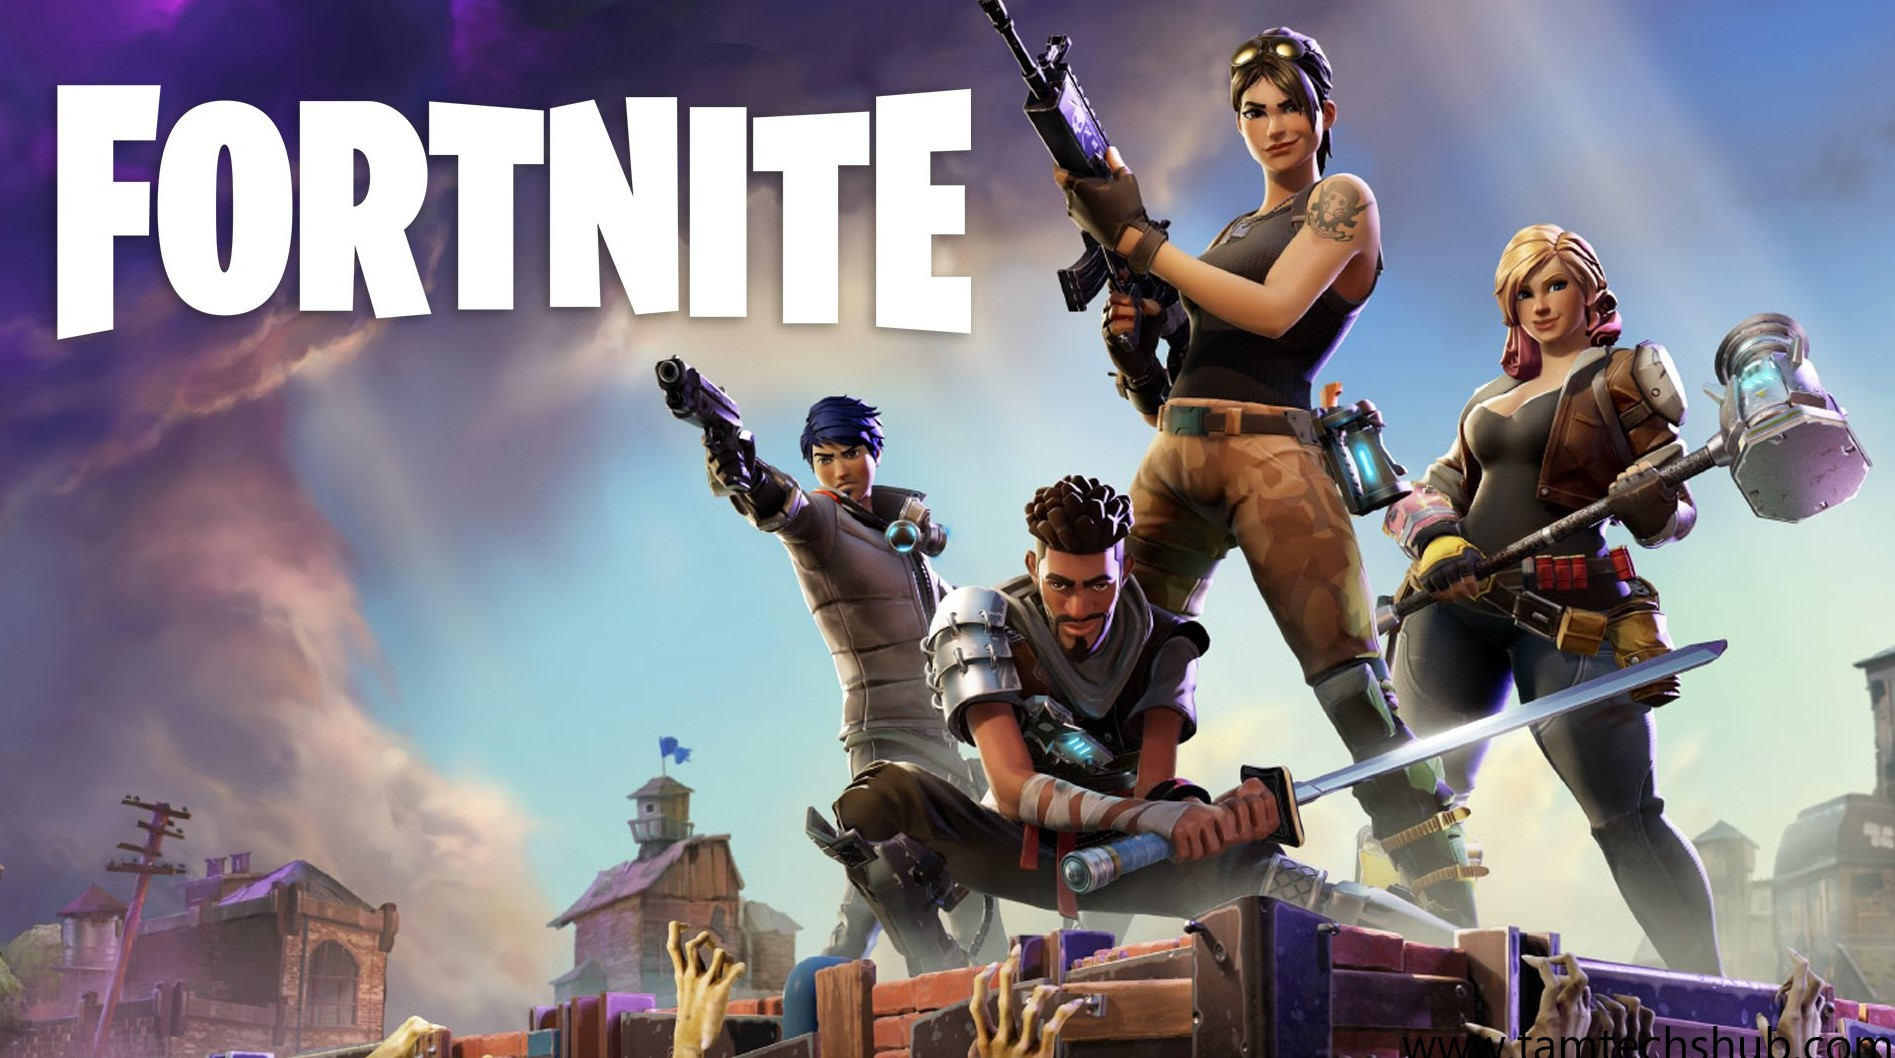 PUBG sues Fortnite